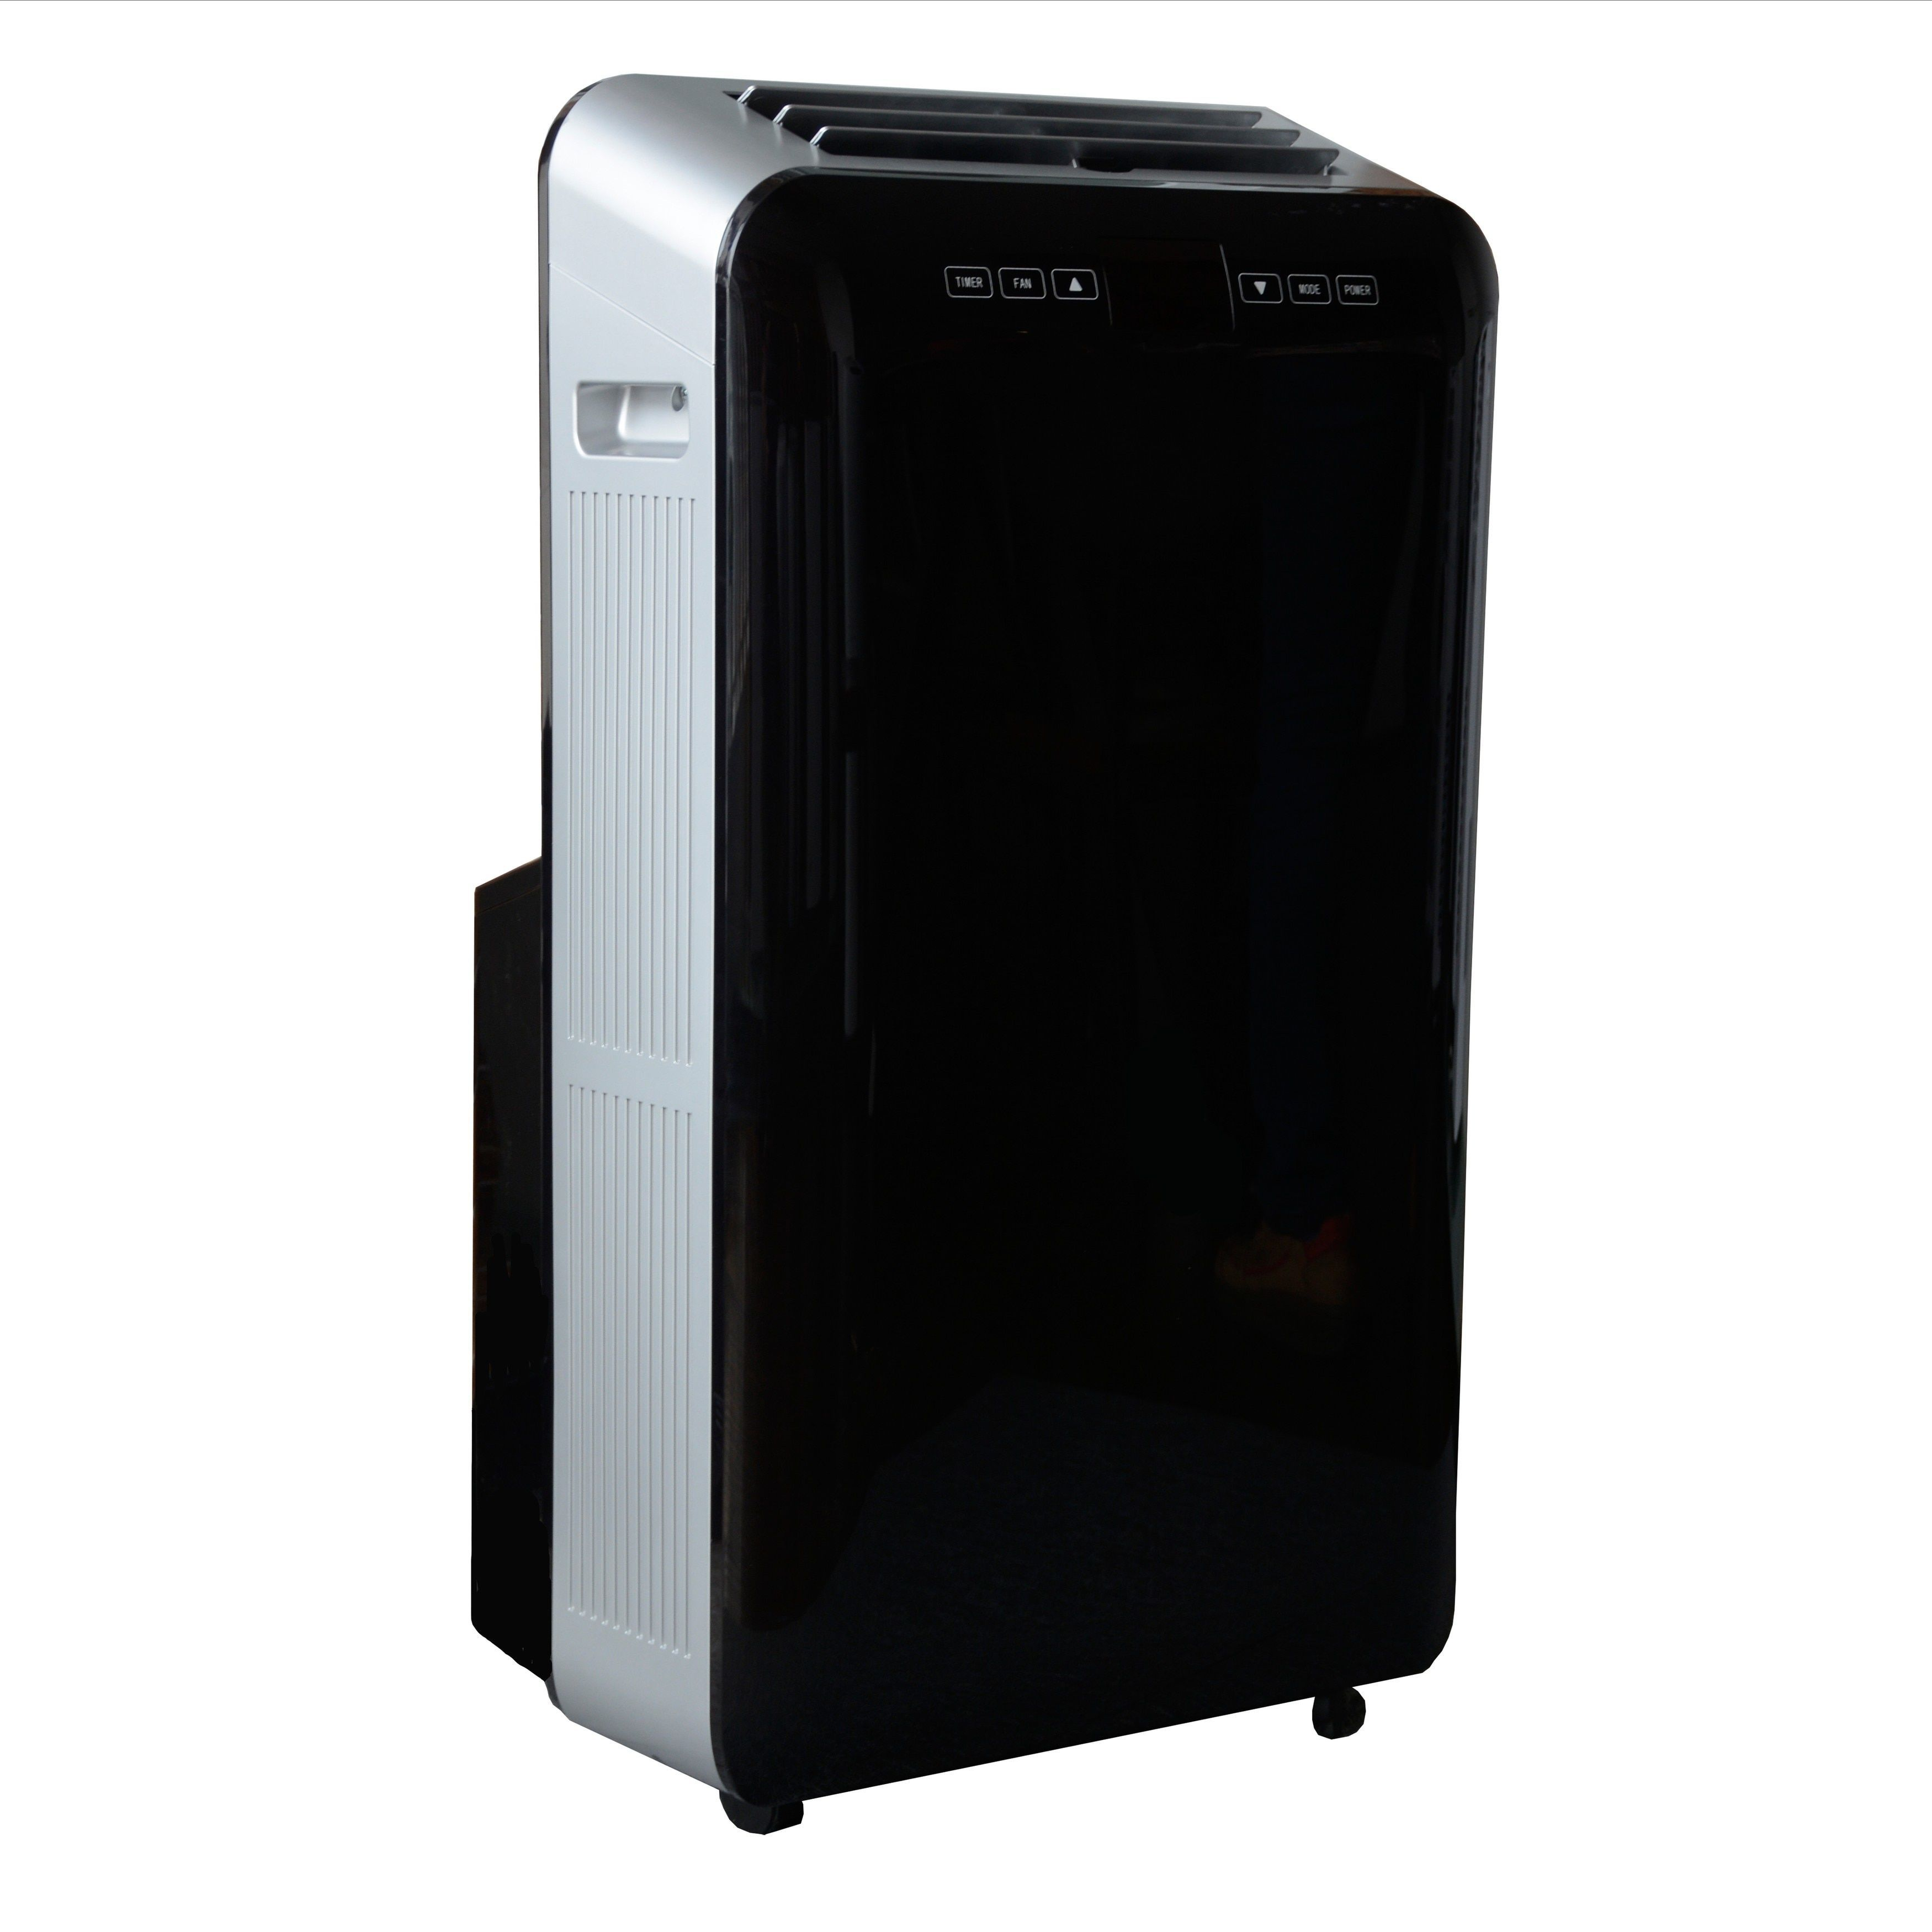 CCH Products YPV614C 14,000 BTU 3in1 Portable Air